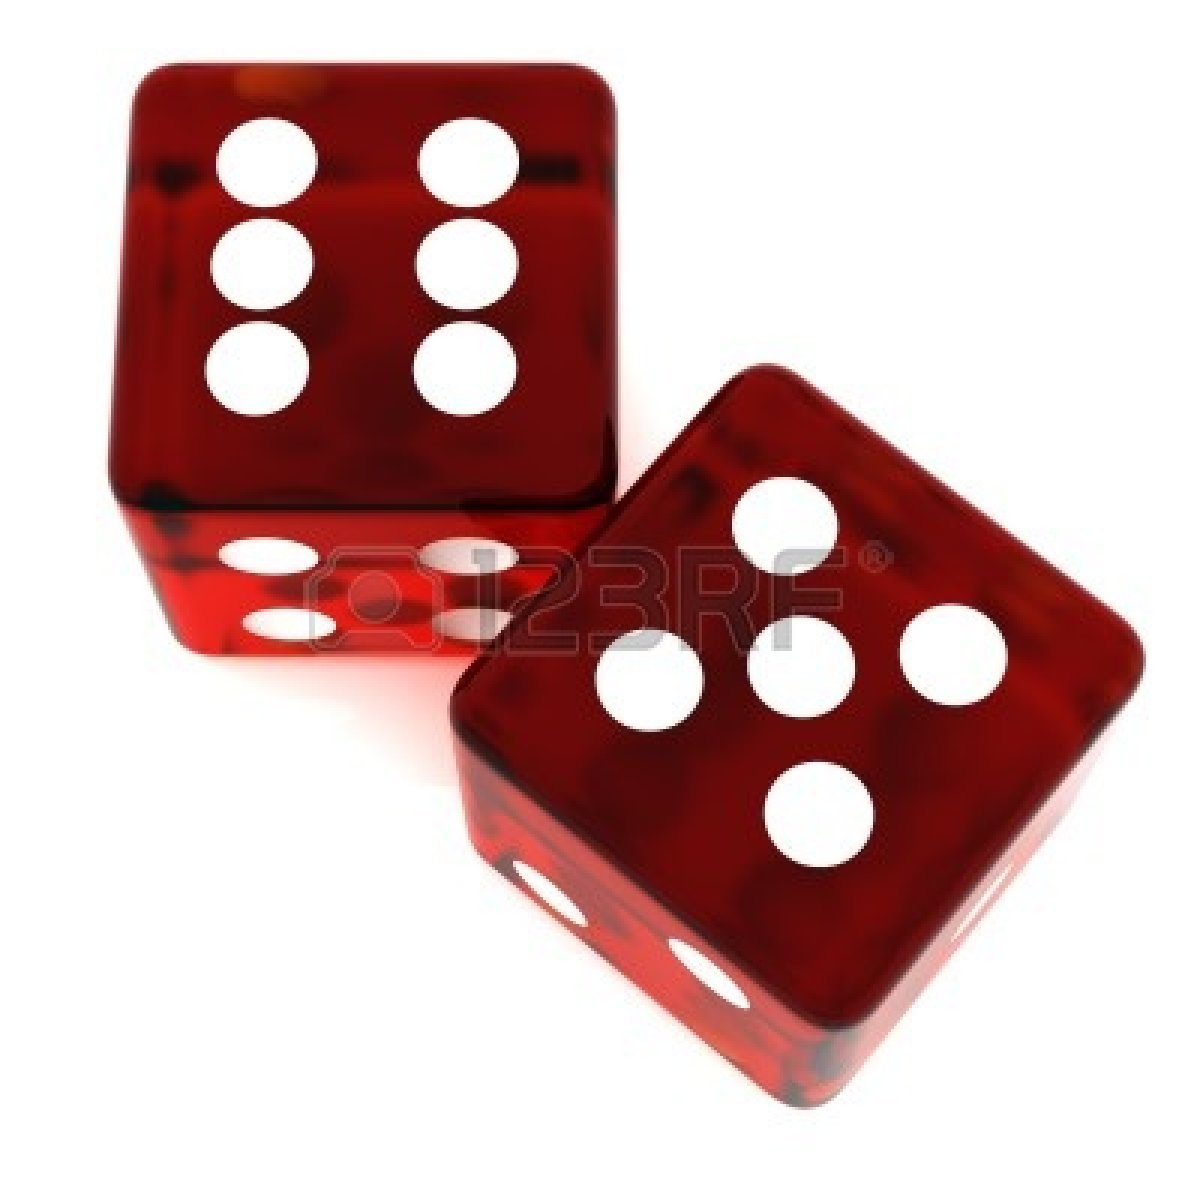 Dice clipart rolled Background 9341381 rolling Animated jpg